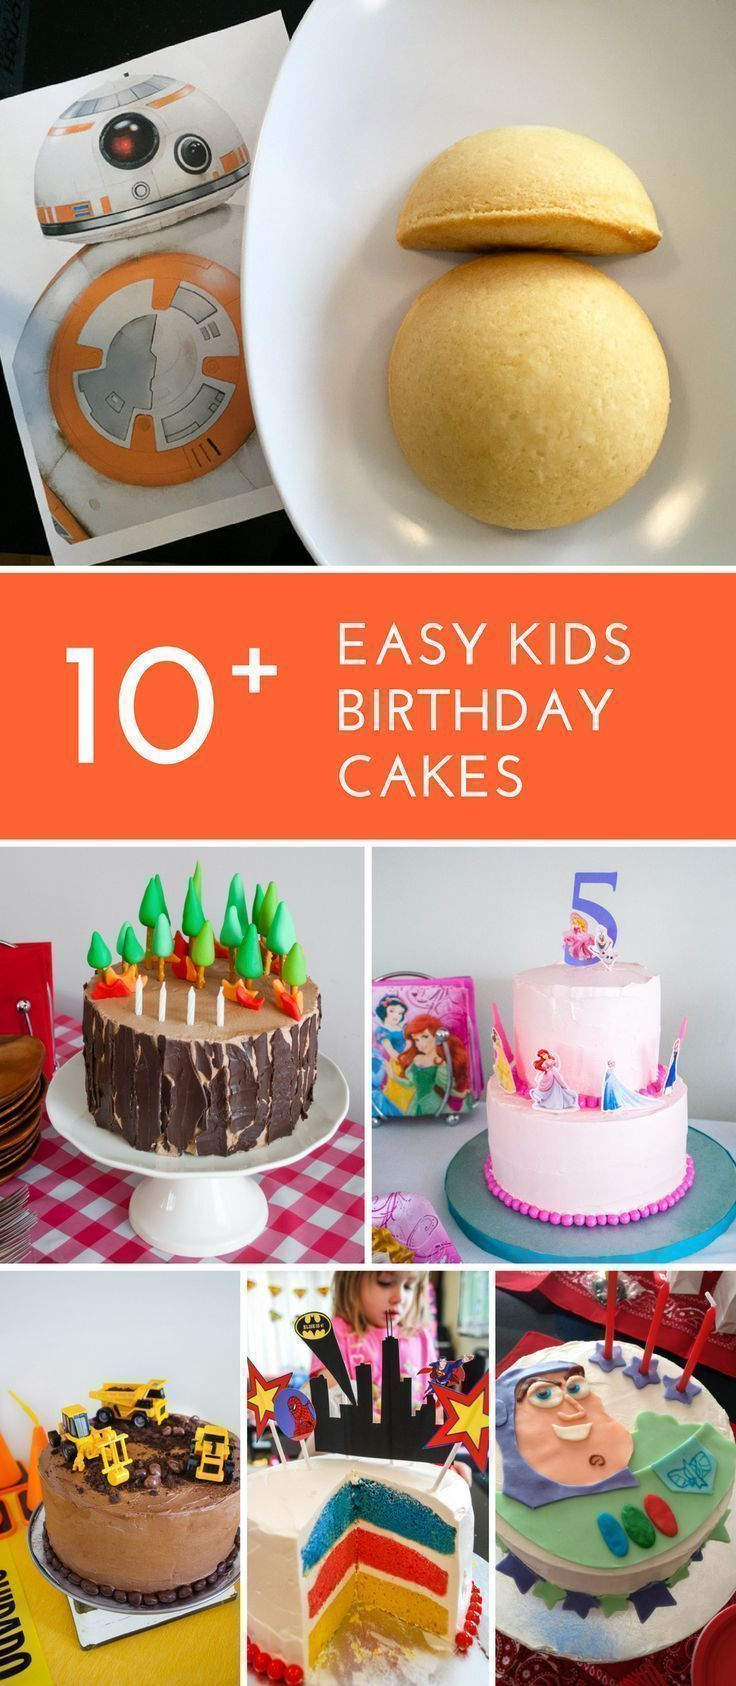 10 Easy Birthday Cakes For Kids Beginner Cake Decorators Includes Toy Story LEGO Super Heroes